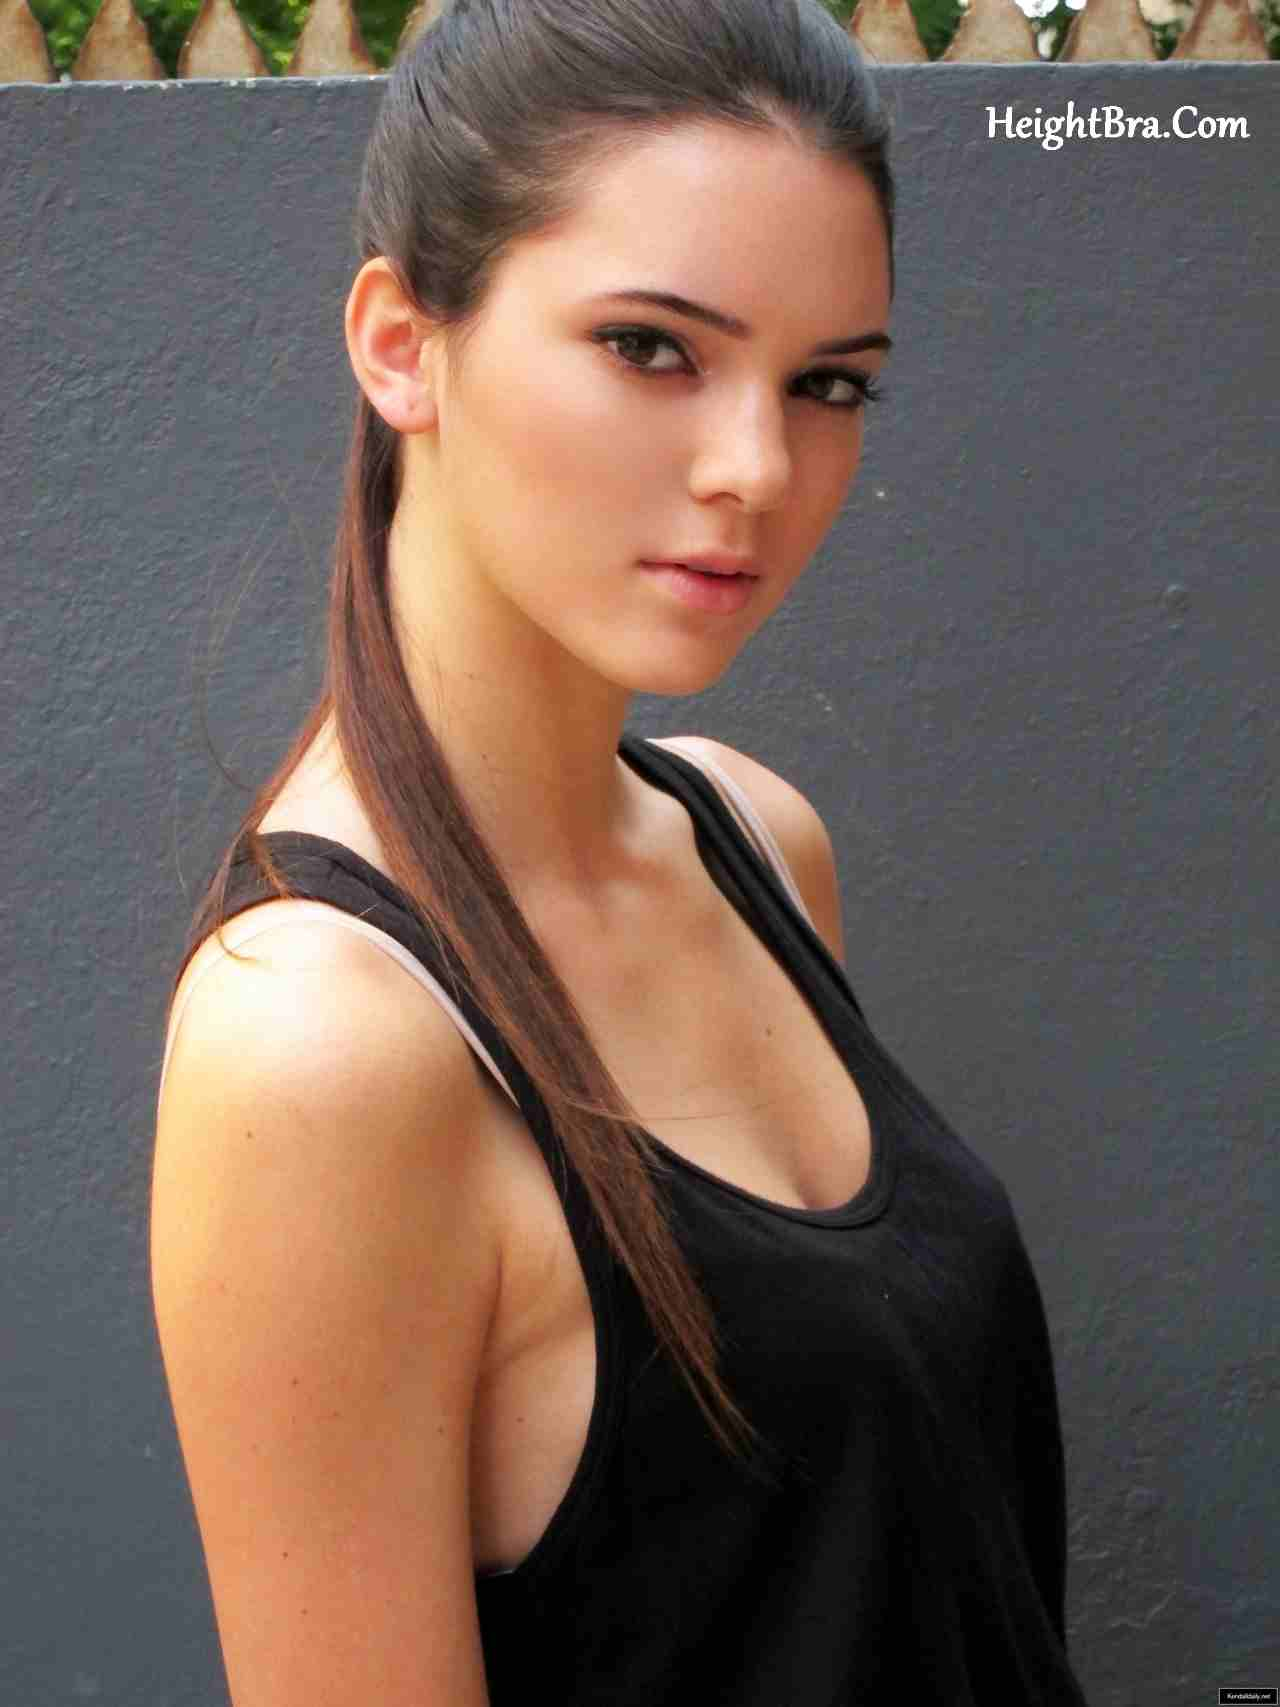 Consider, Kendall jenner hot suggest